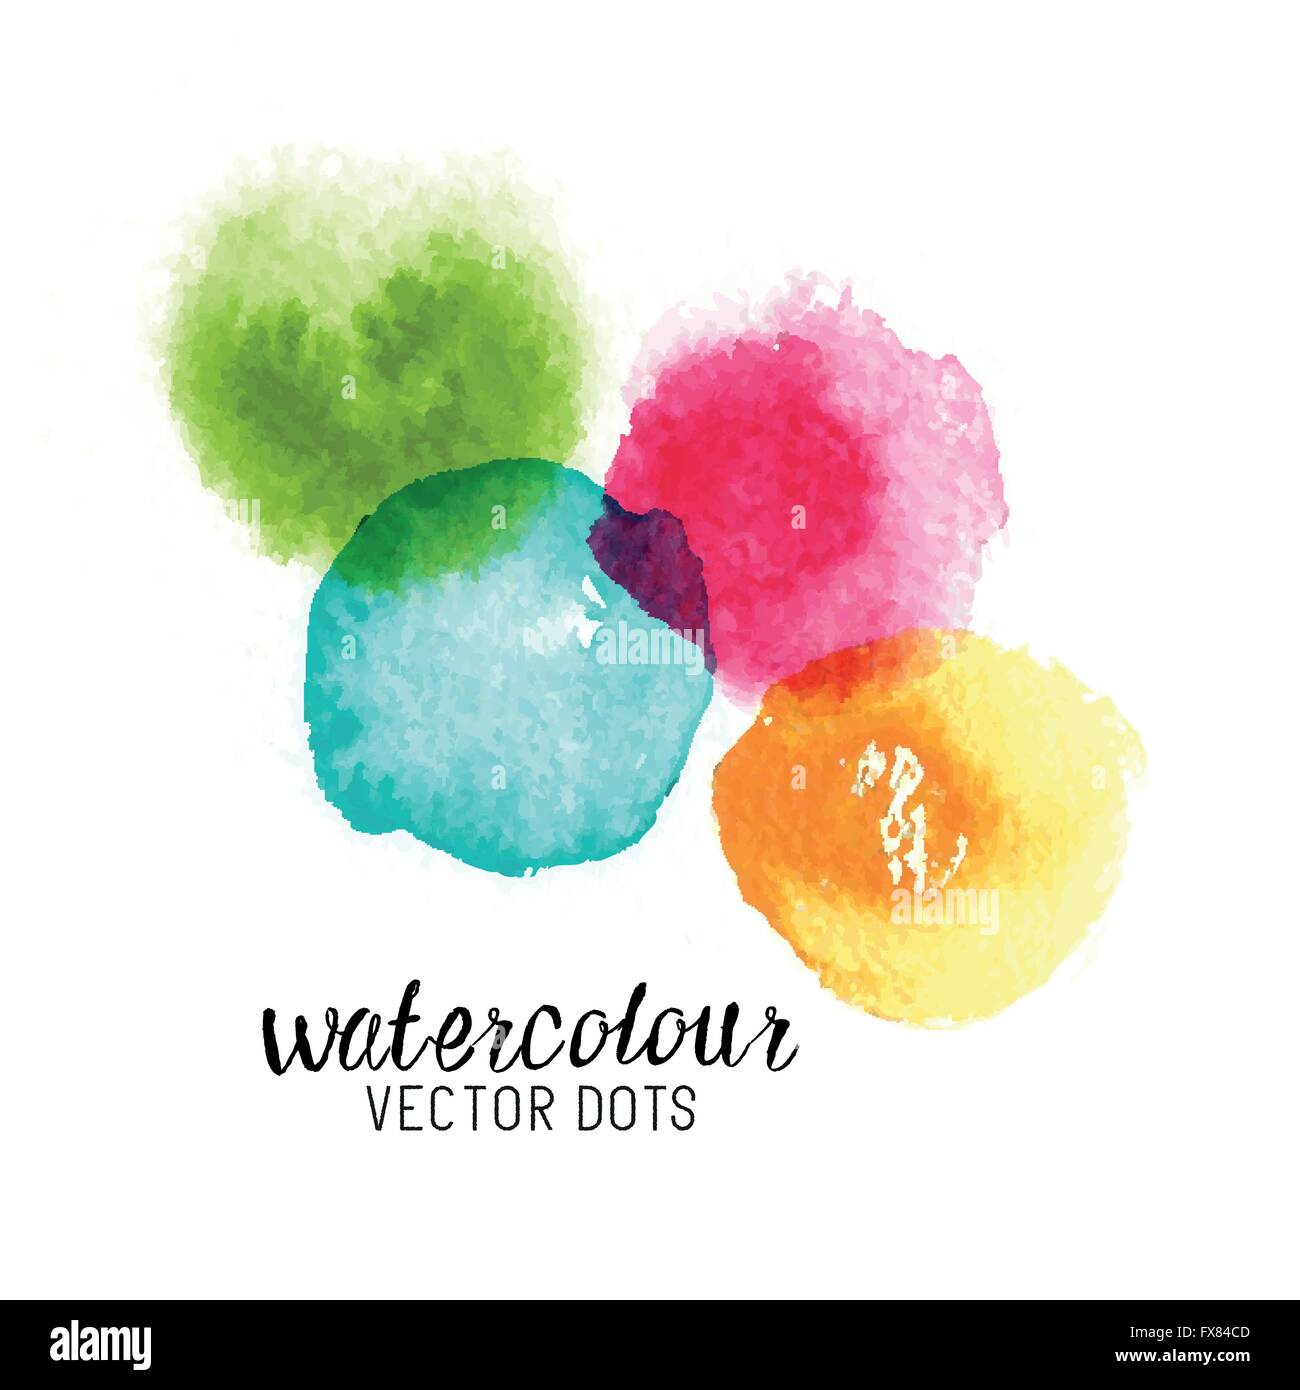 Watercolour Vector Dots. Colourful watercolour stains. Vector illustration - Stock Image